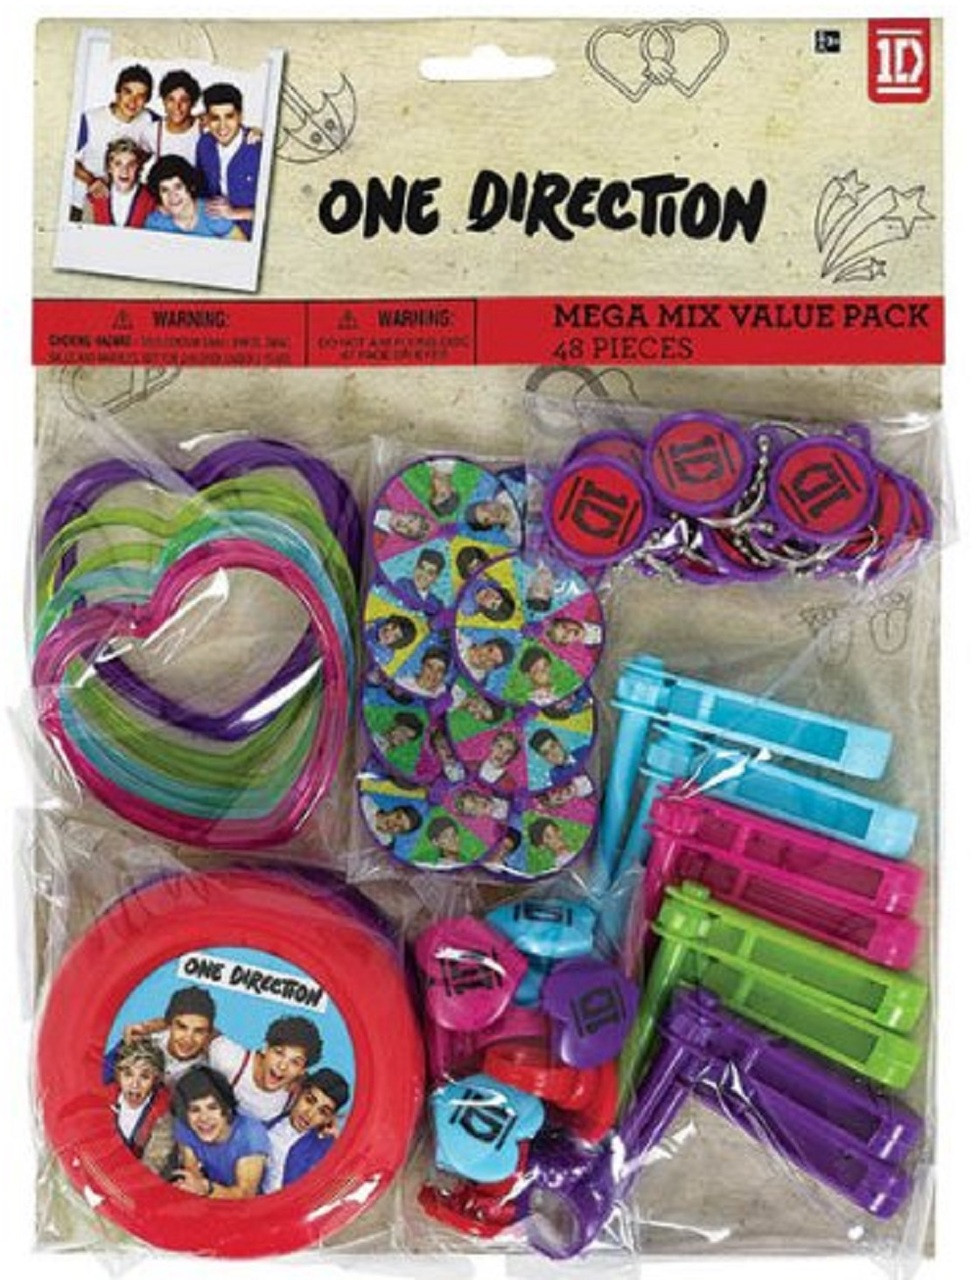 One Direction - Value Pack - 48pc Set